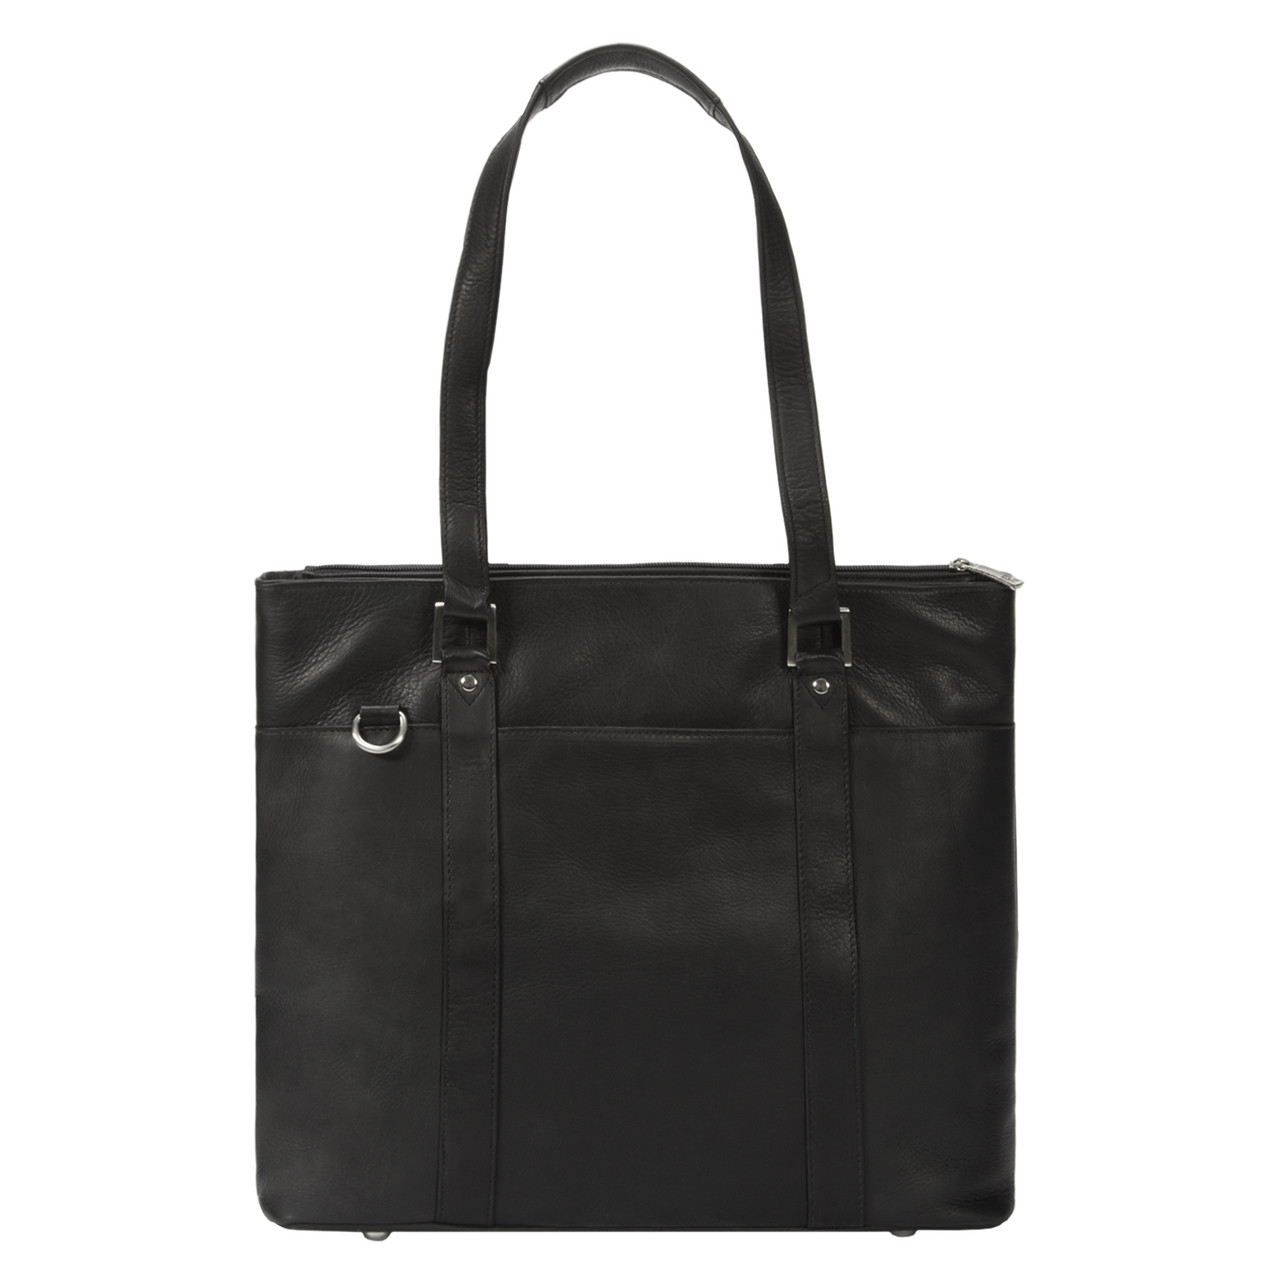 Muiska - Taipei - 15.4-inch laptop commuter tote bag - black leather